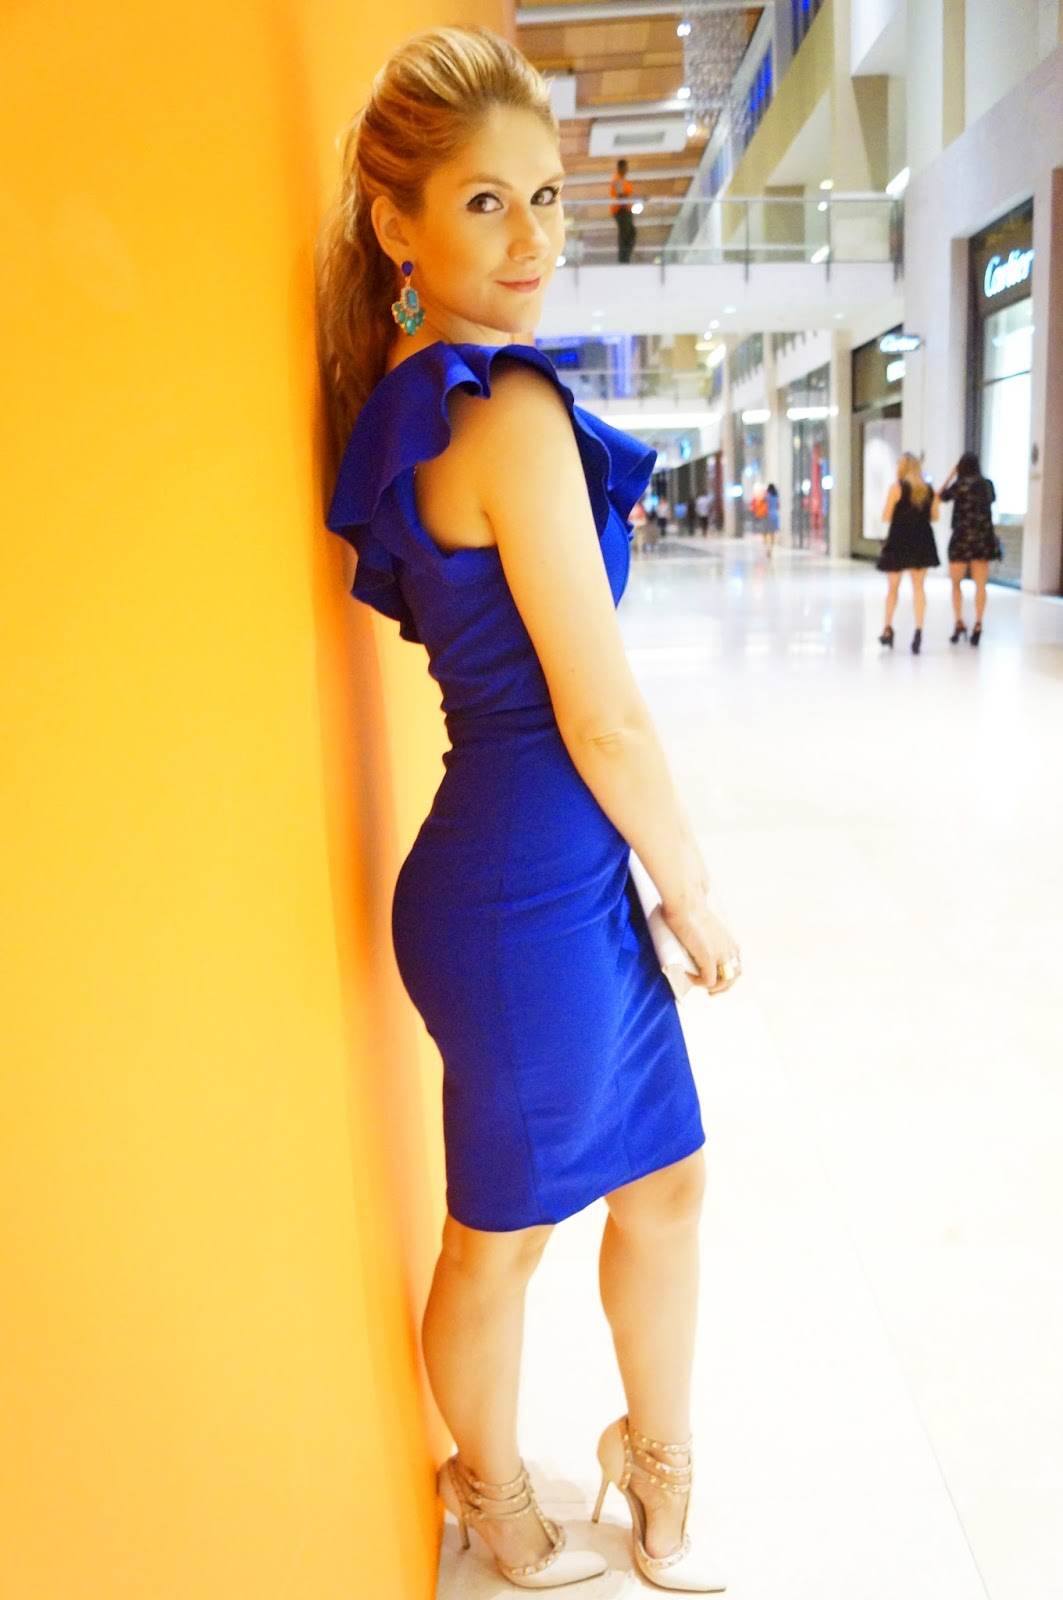 Sexy Blue Dress from Gama n Gama Boutique